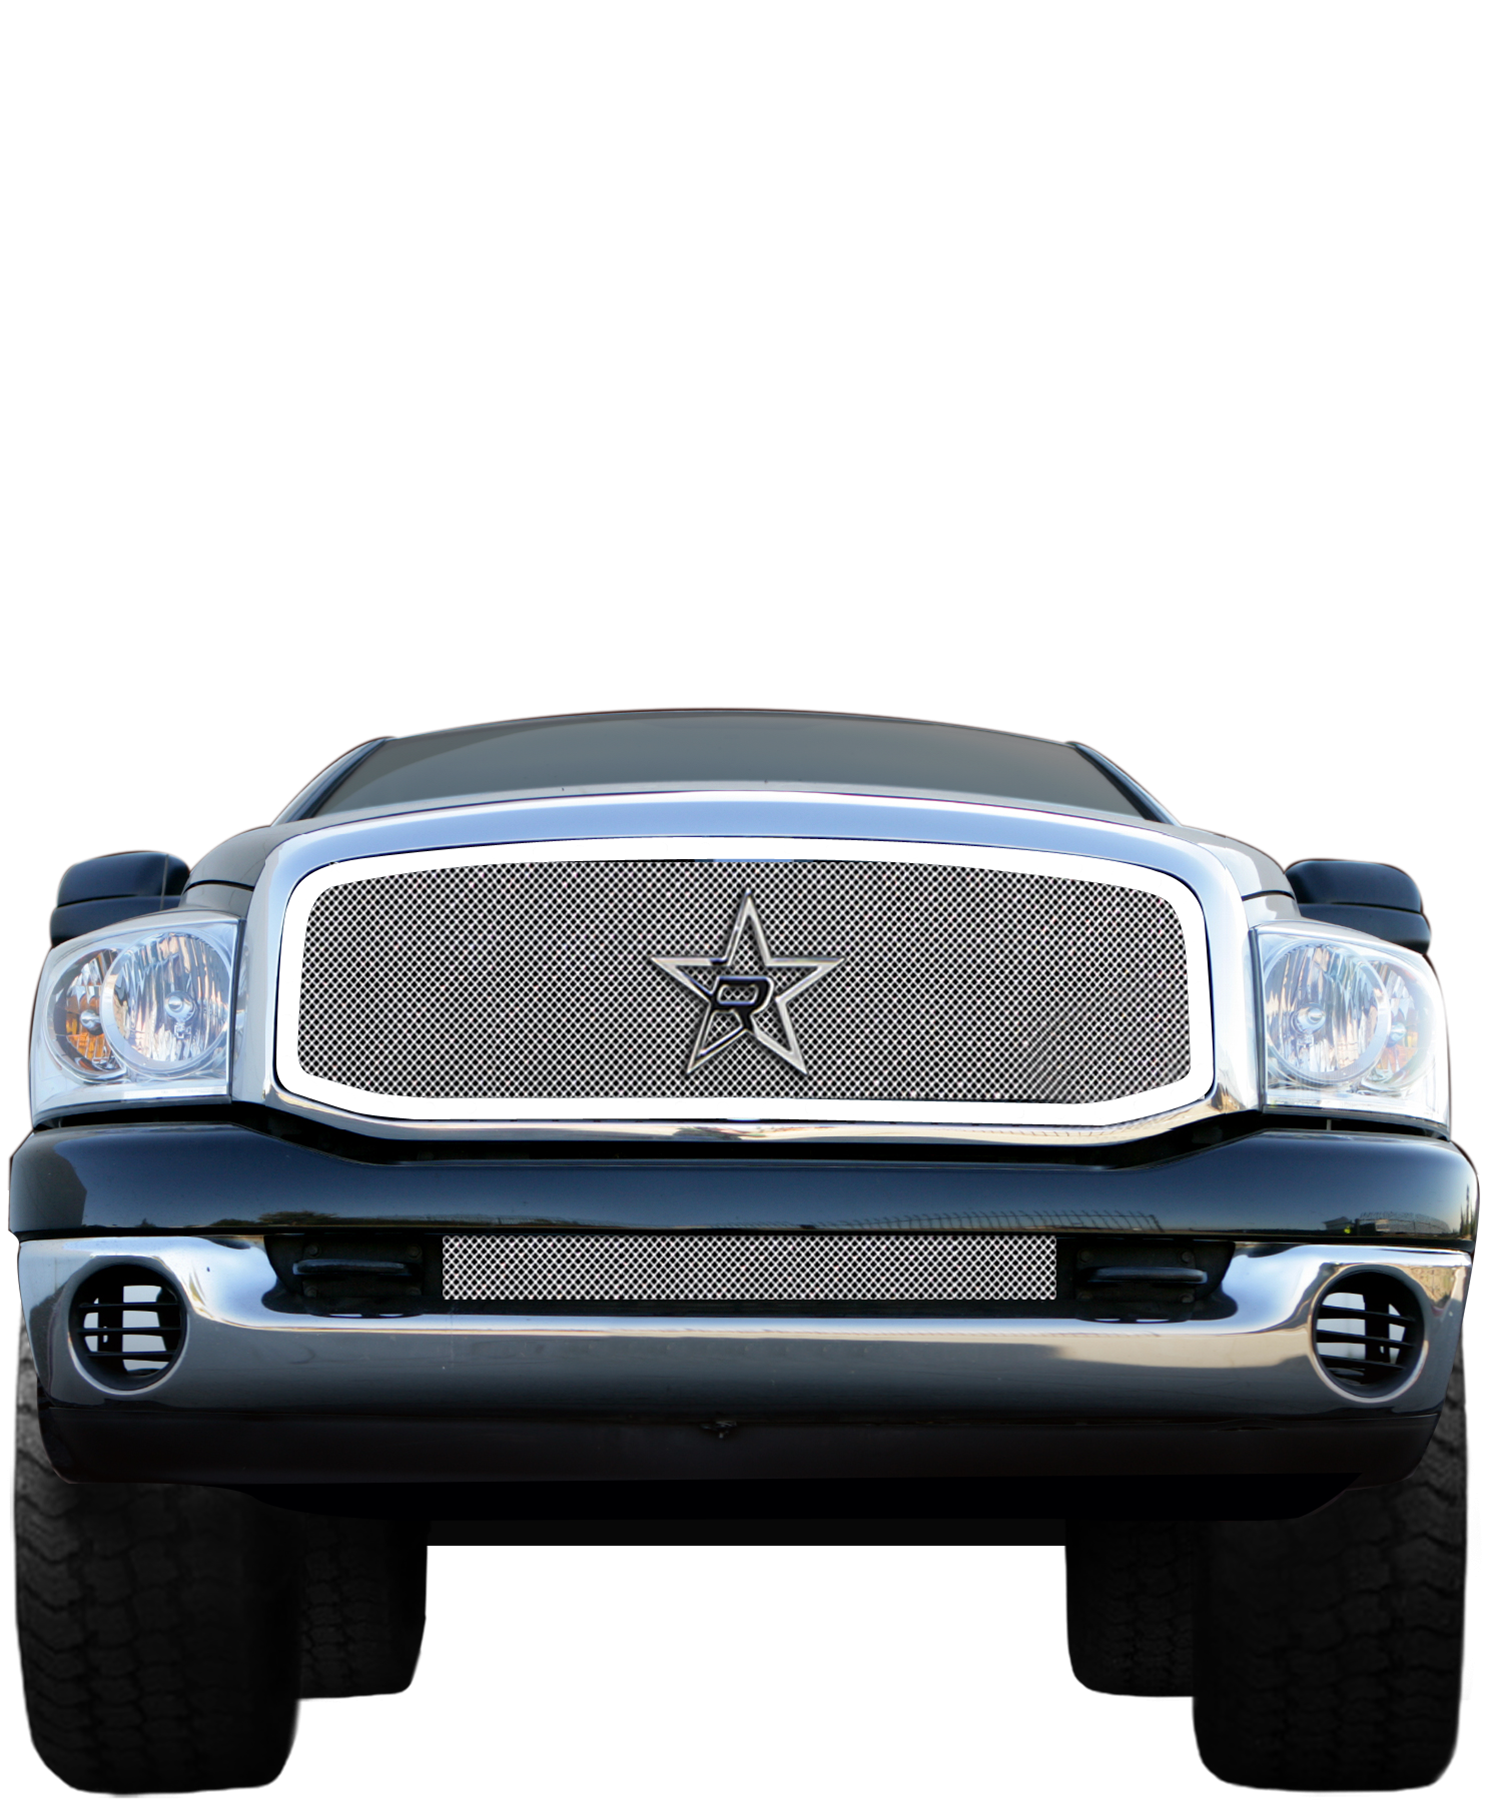 Chrome grille png. Rbp smooth frame for